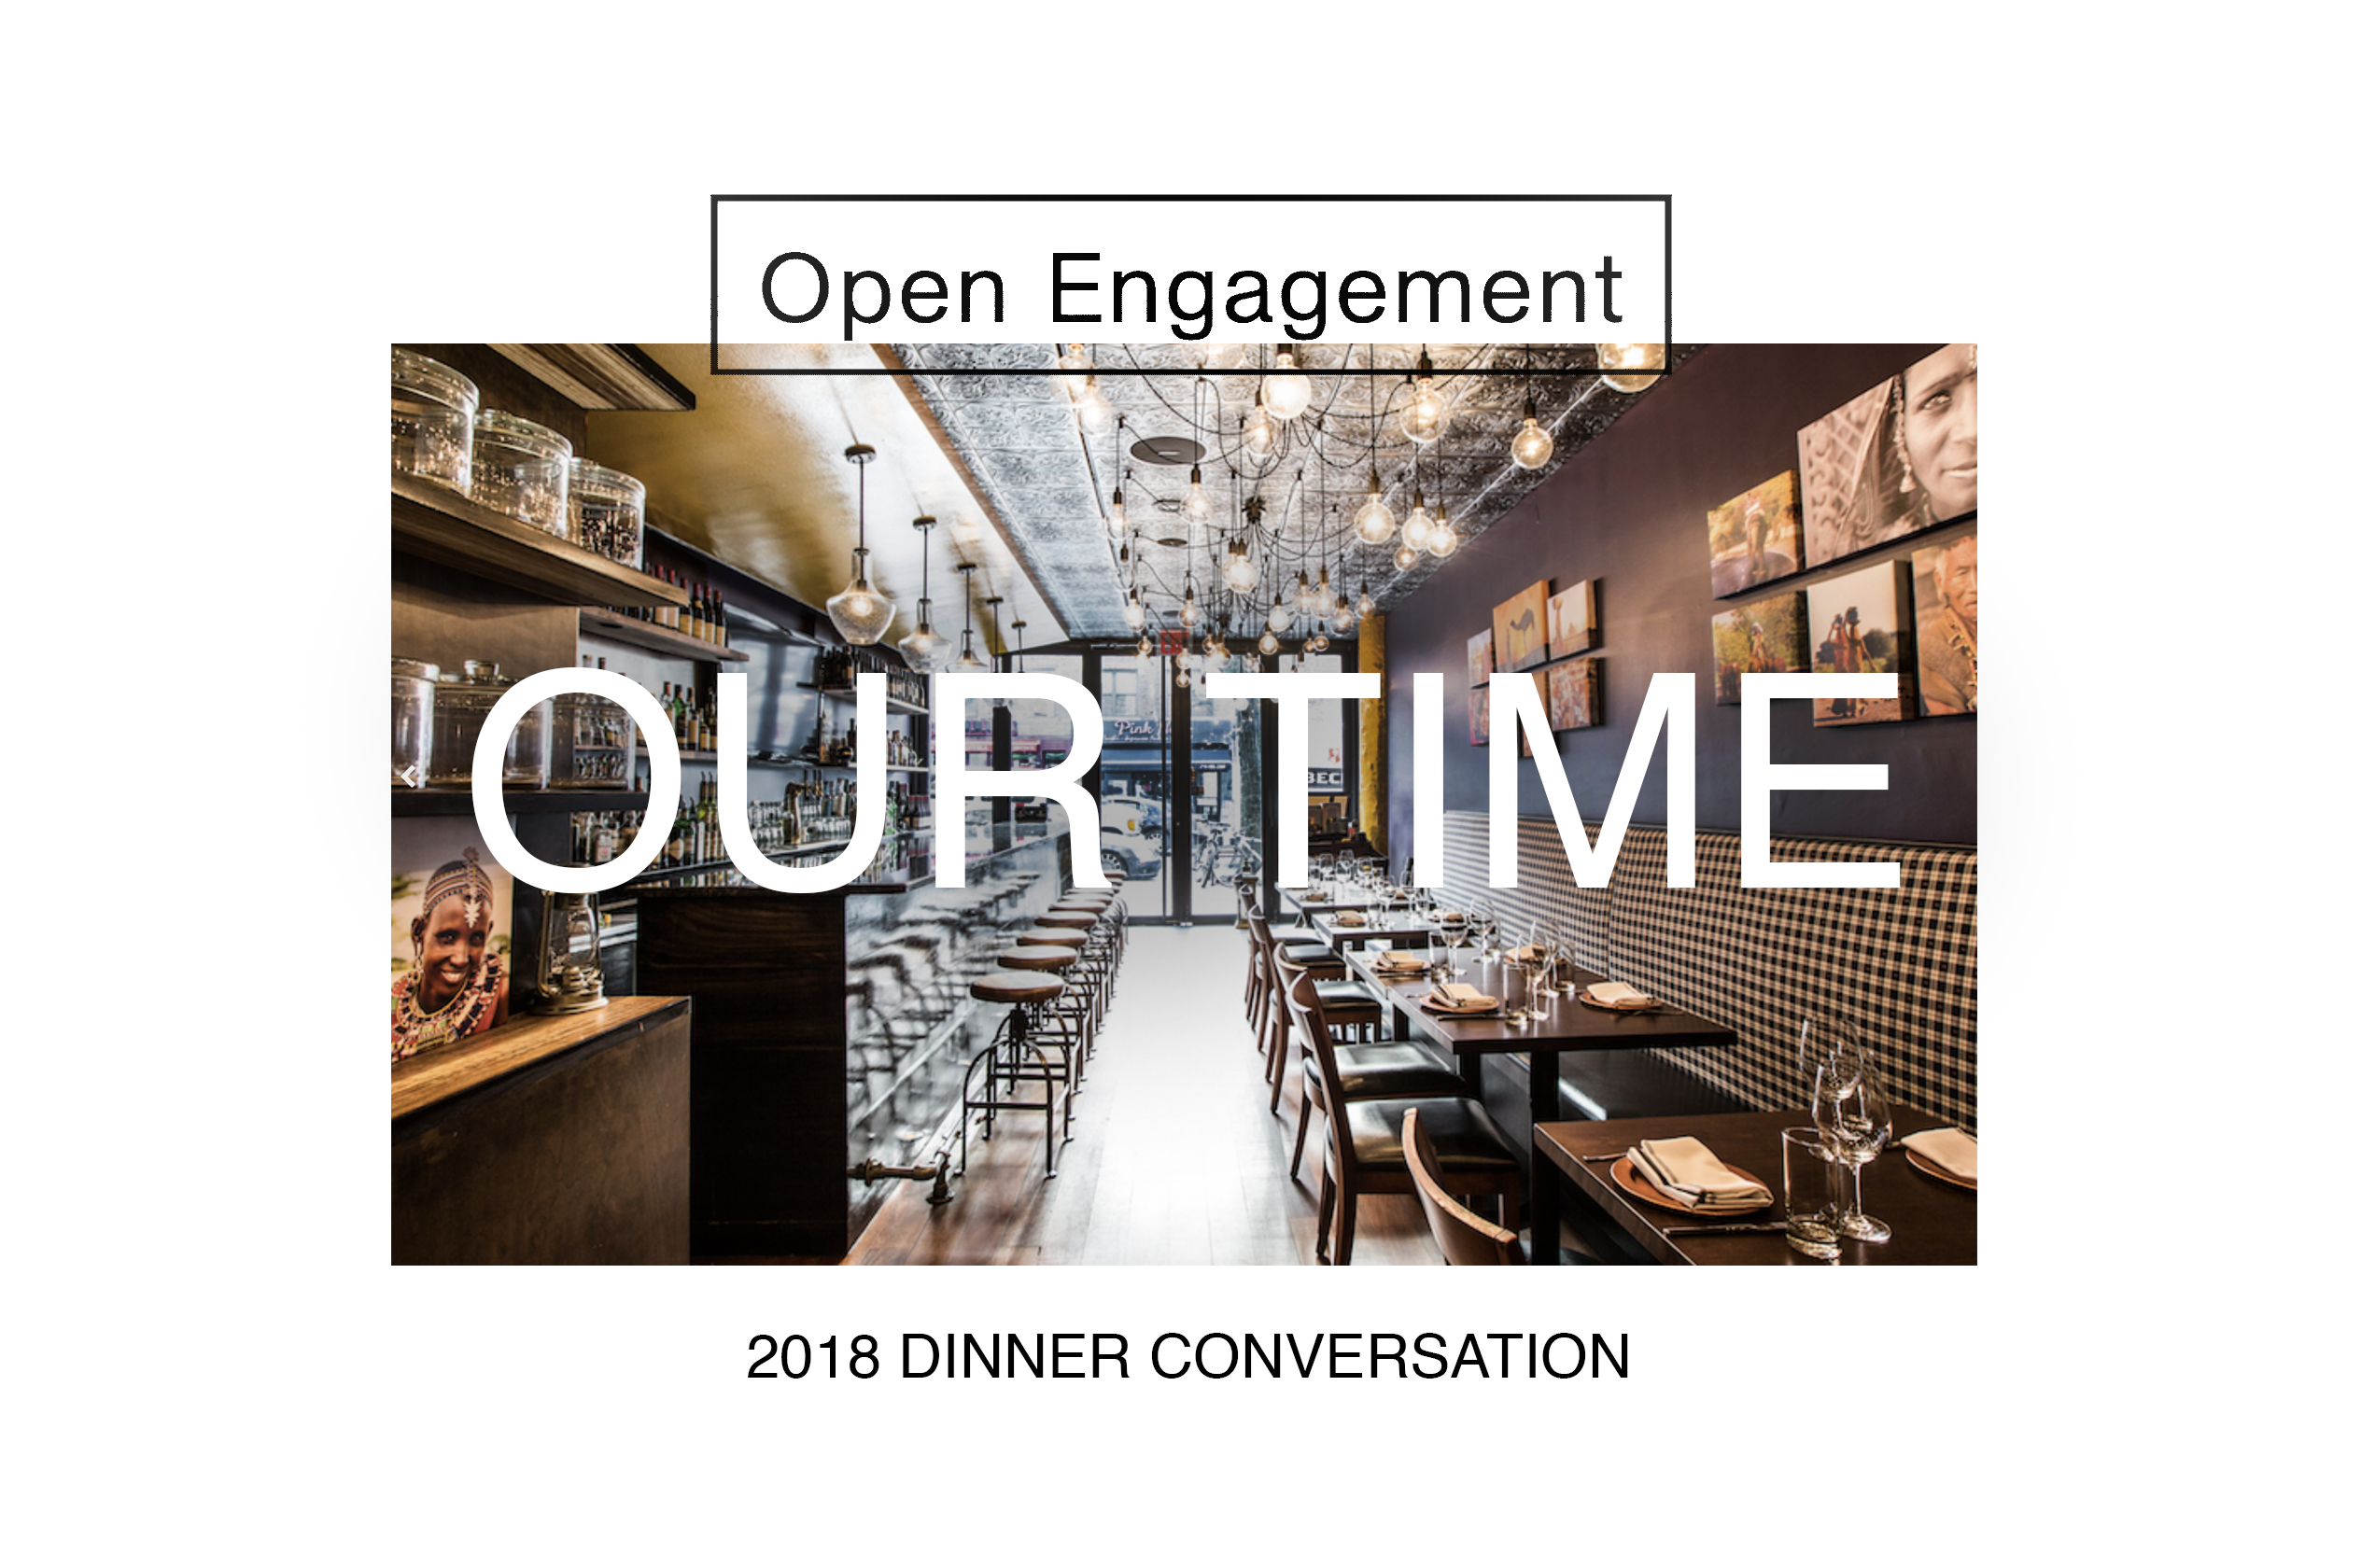 Open Engagement 2018